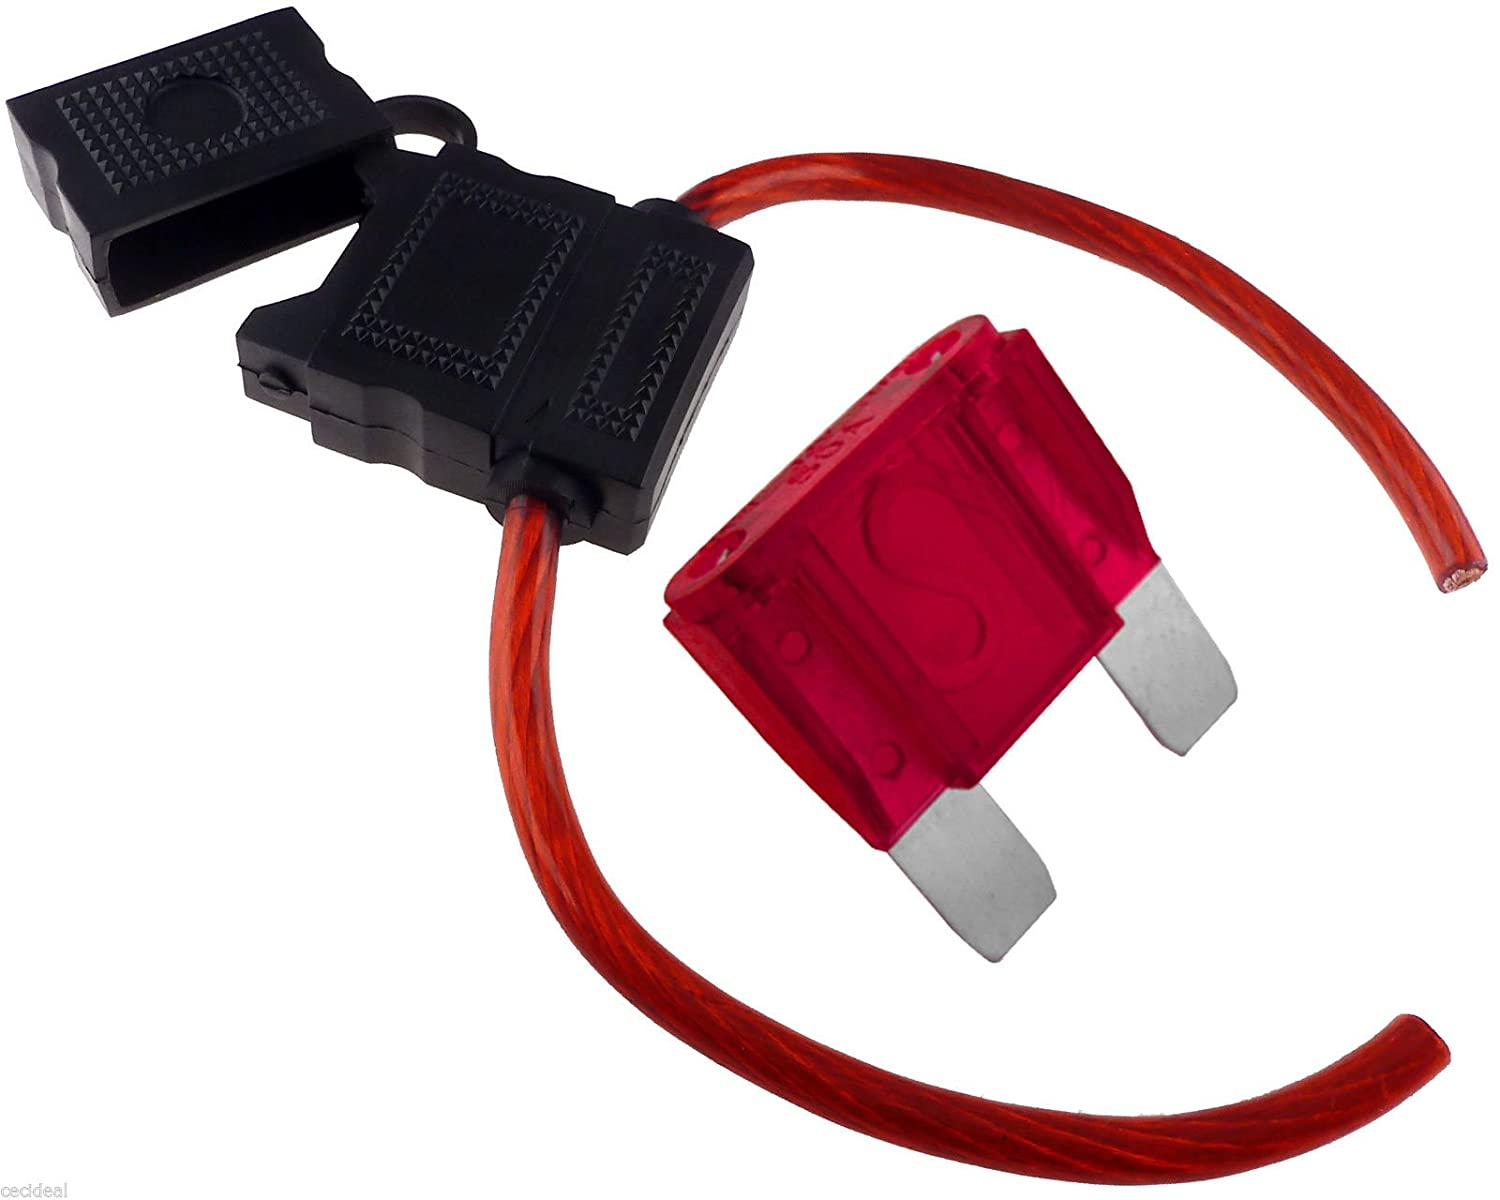 8 GAUGE INLINE MAXI FUSE HOLDER WITH 50 AMP FUSE WITH COVER NEW - -  Amazon.com